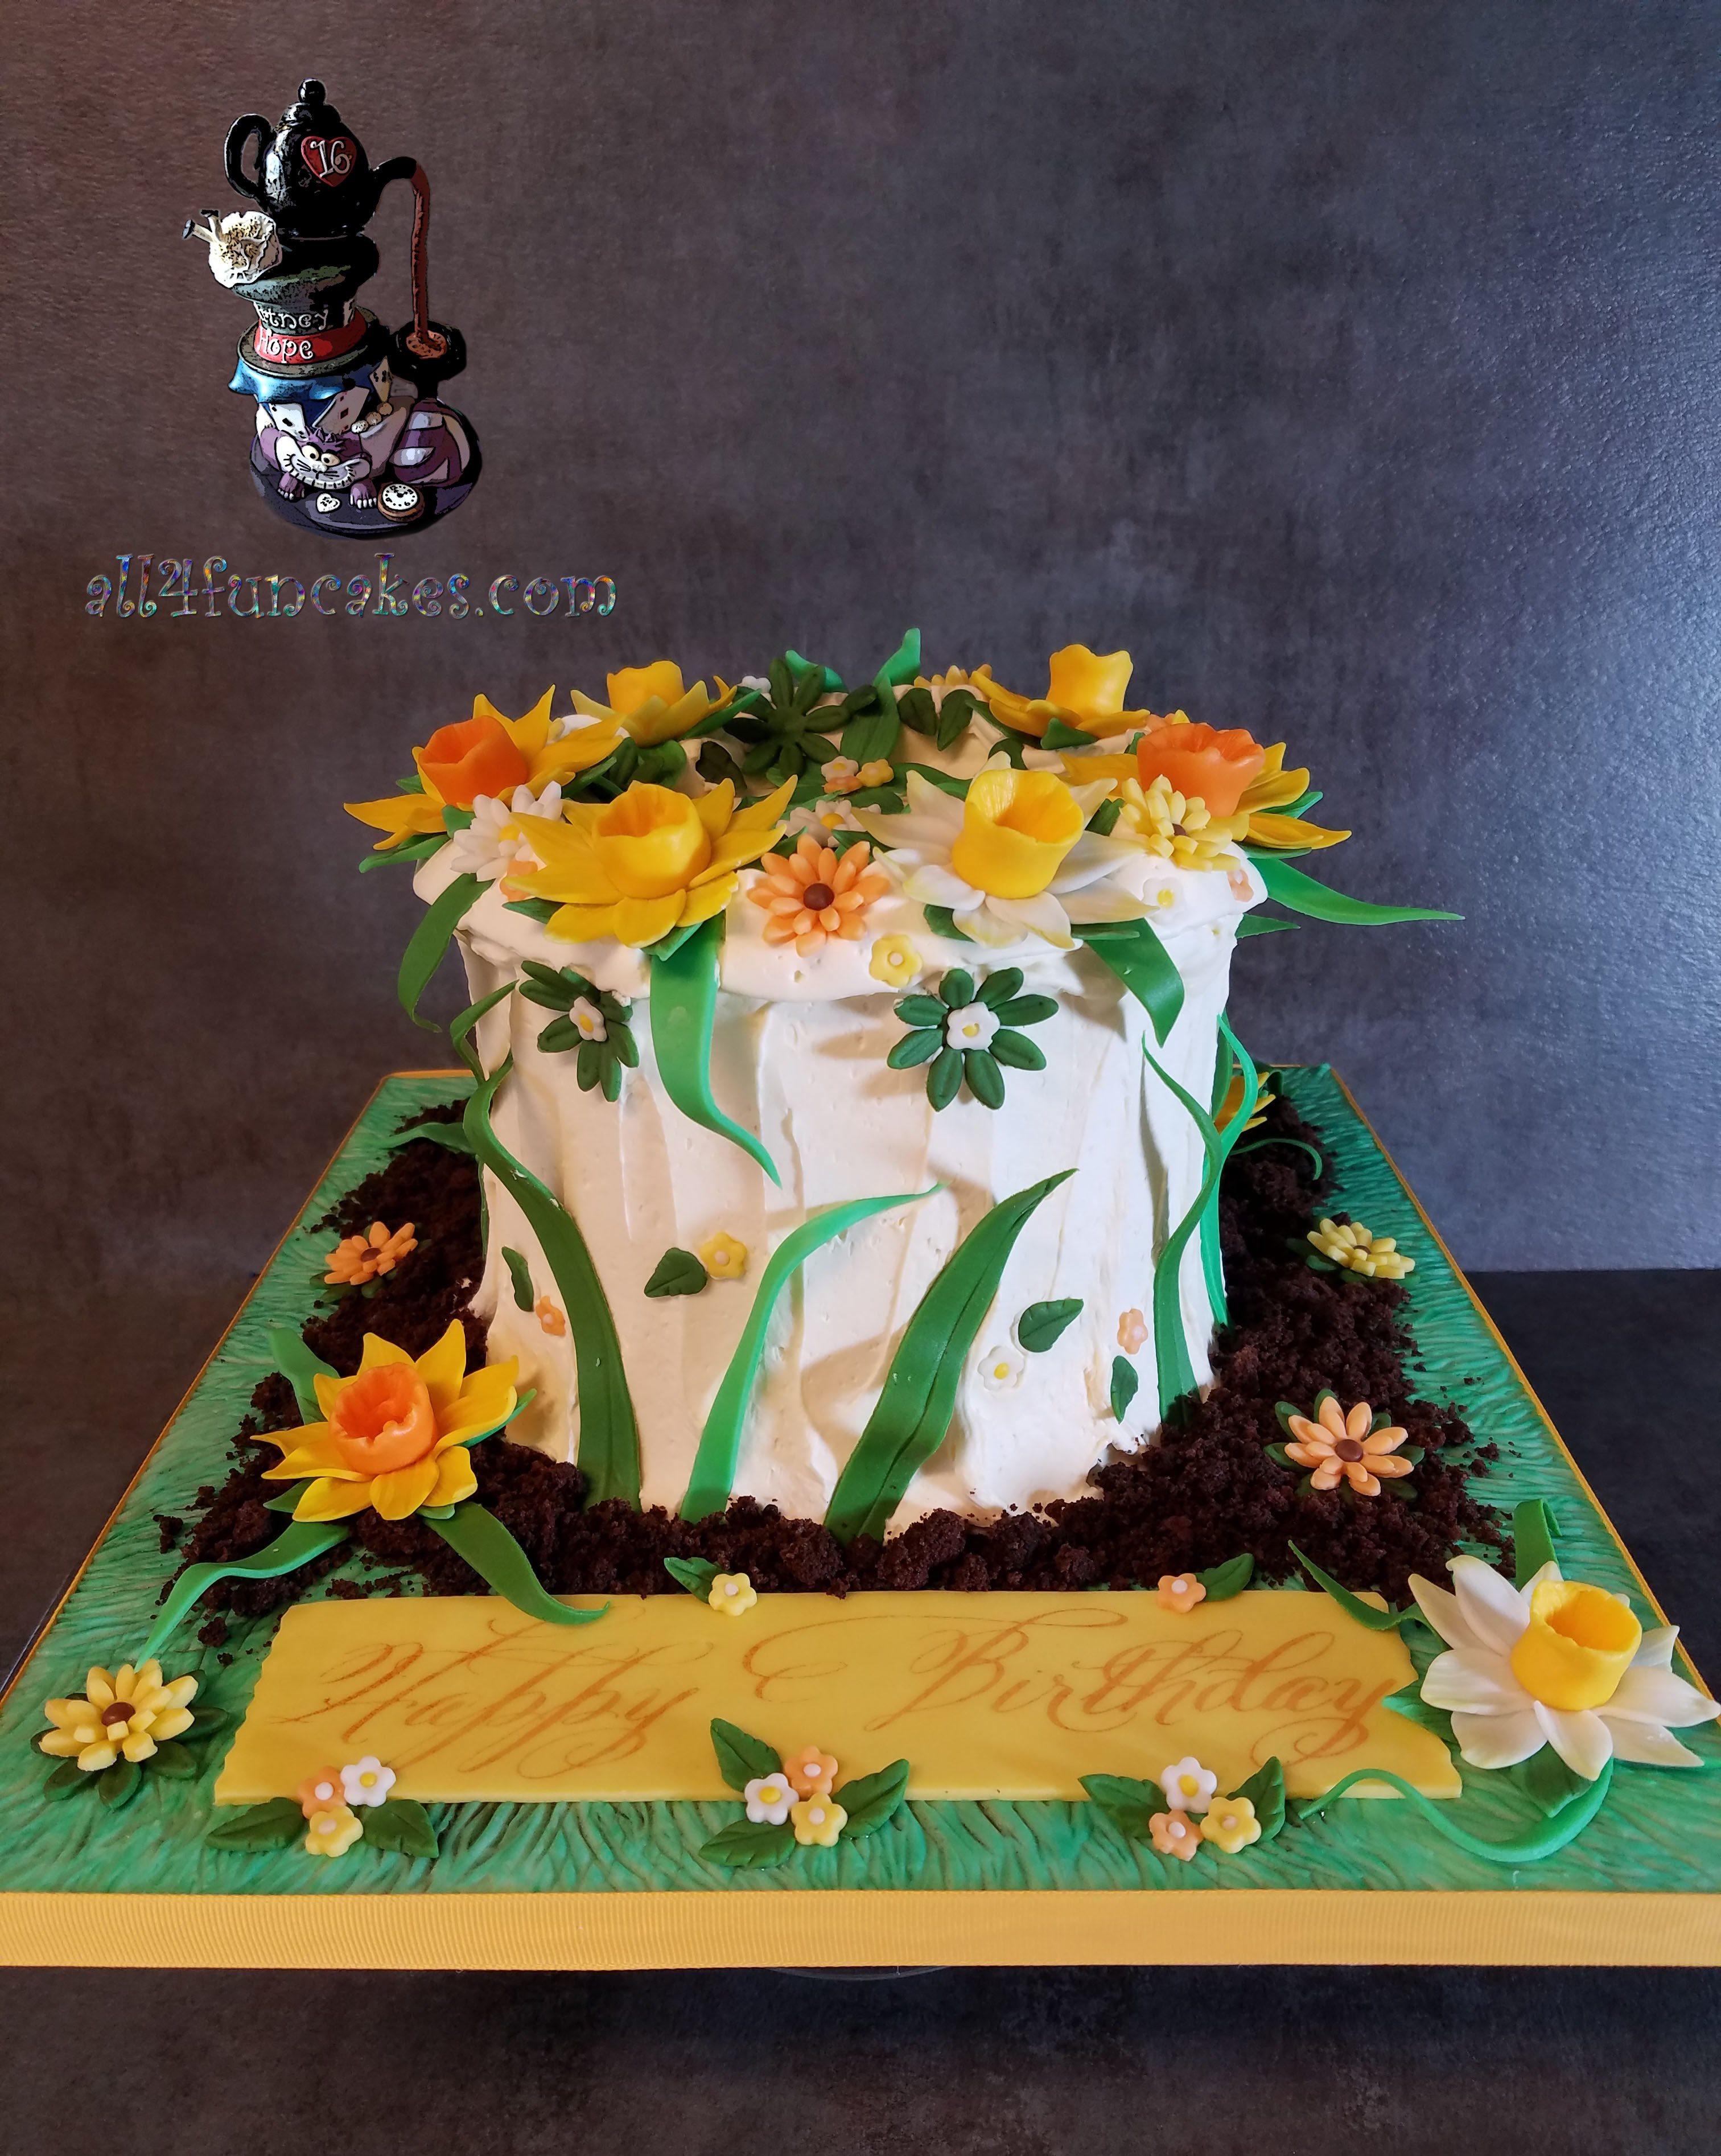 Special Occasion Fondant Daffodils and Flower Garden Chocolate Birthday Cake with Caramel Buttercream by All4Fun Cakes LLC